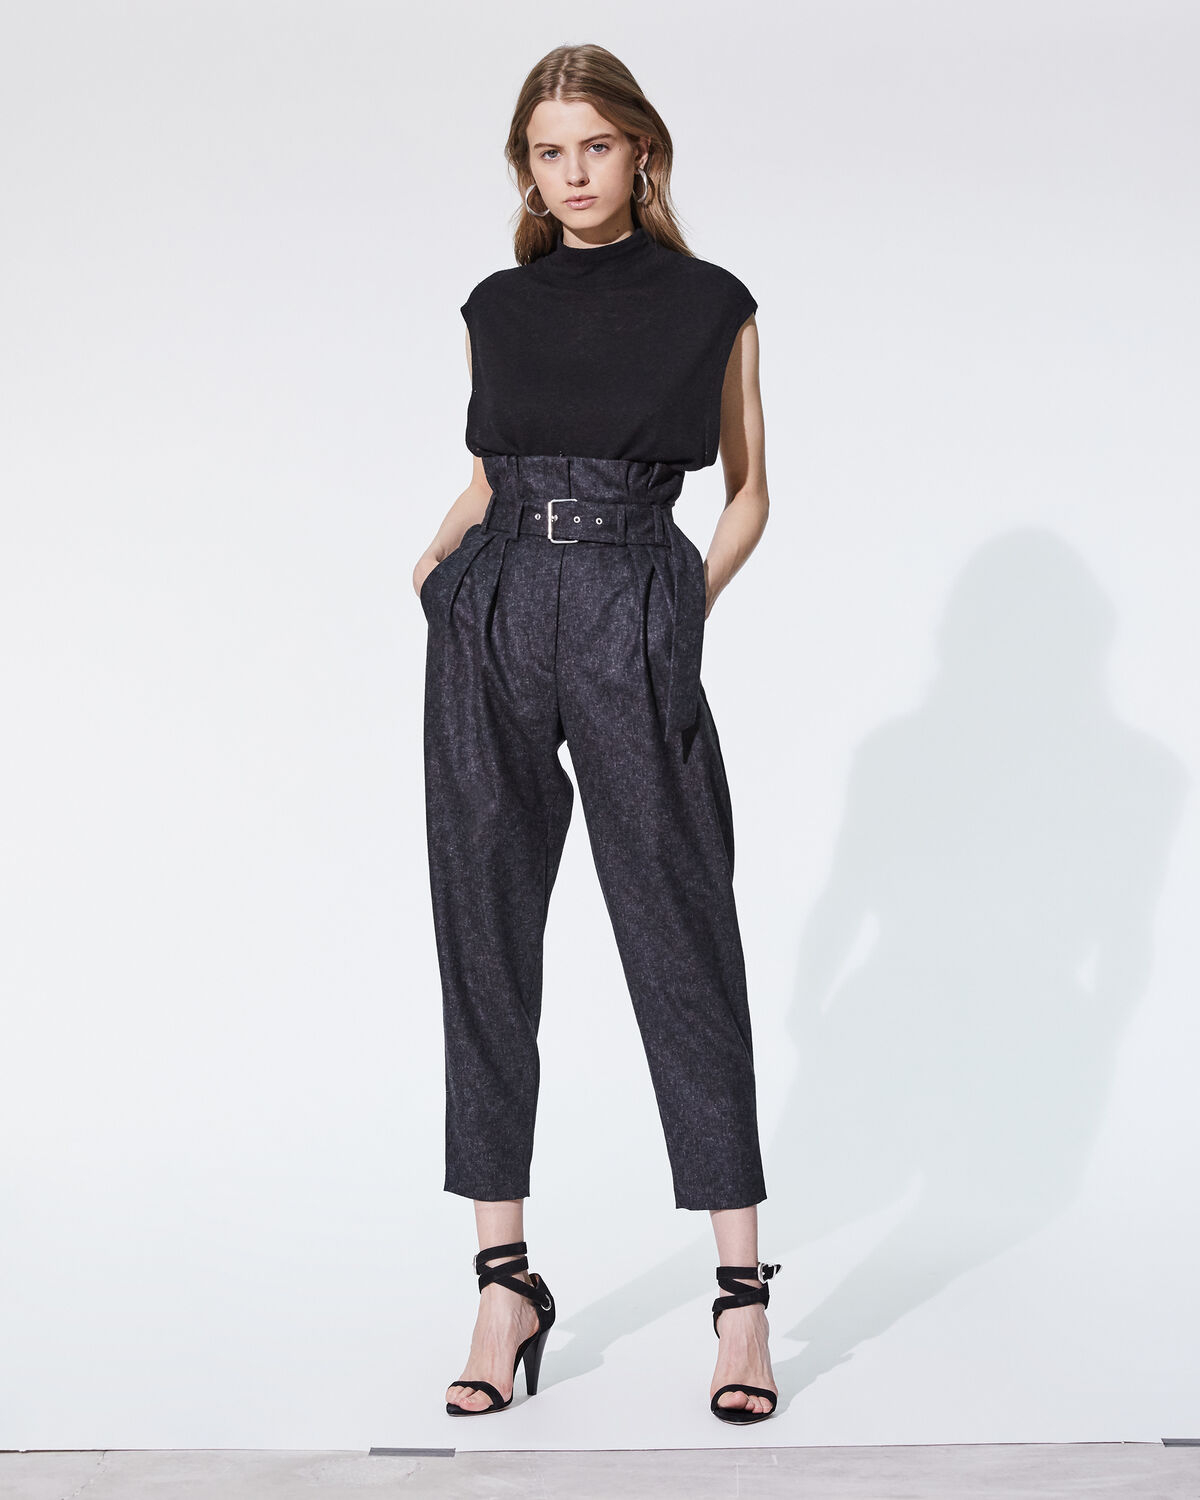 IRO PLUTON TROUSERS,ANTHRACITE